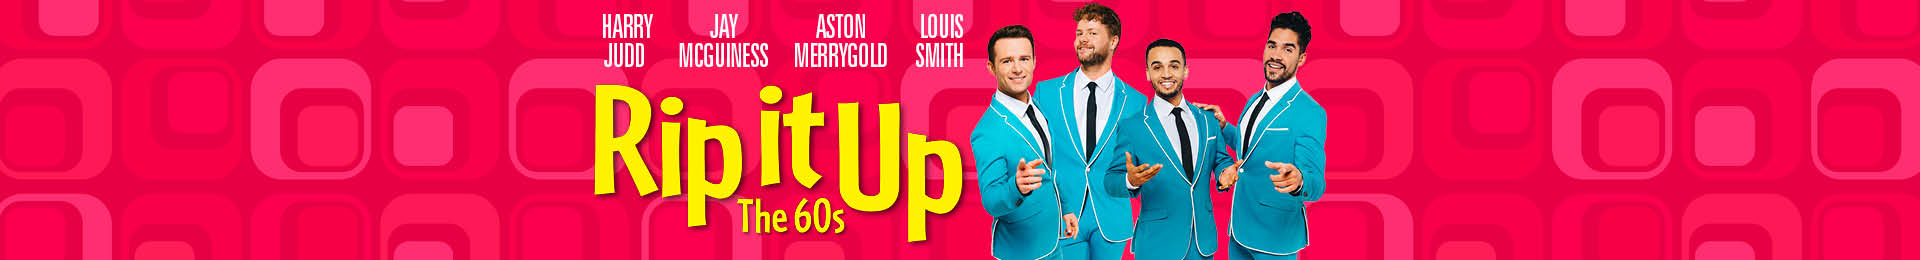 Rip It Up banner image